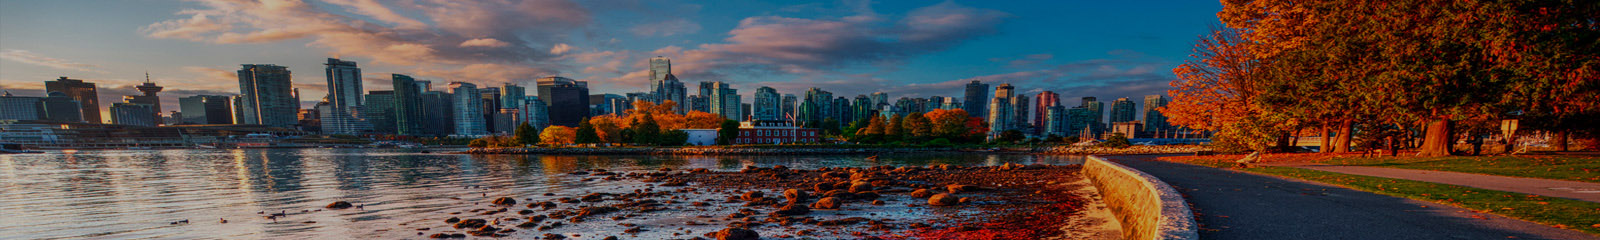 Welcome to the jewel city of Canada, Vancouver! Live in Canada with our hands on guidebook to the city of Vancouver. From places to visit, education systems and so much more!